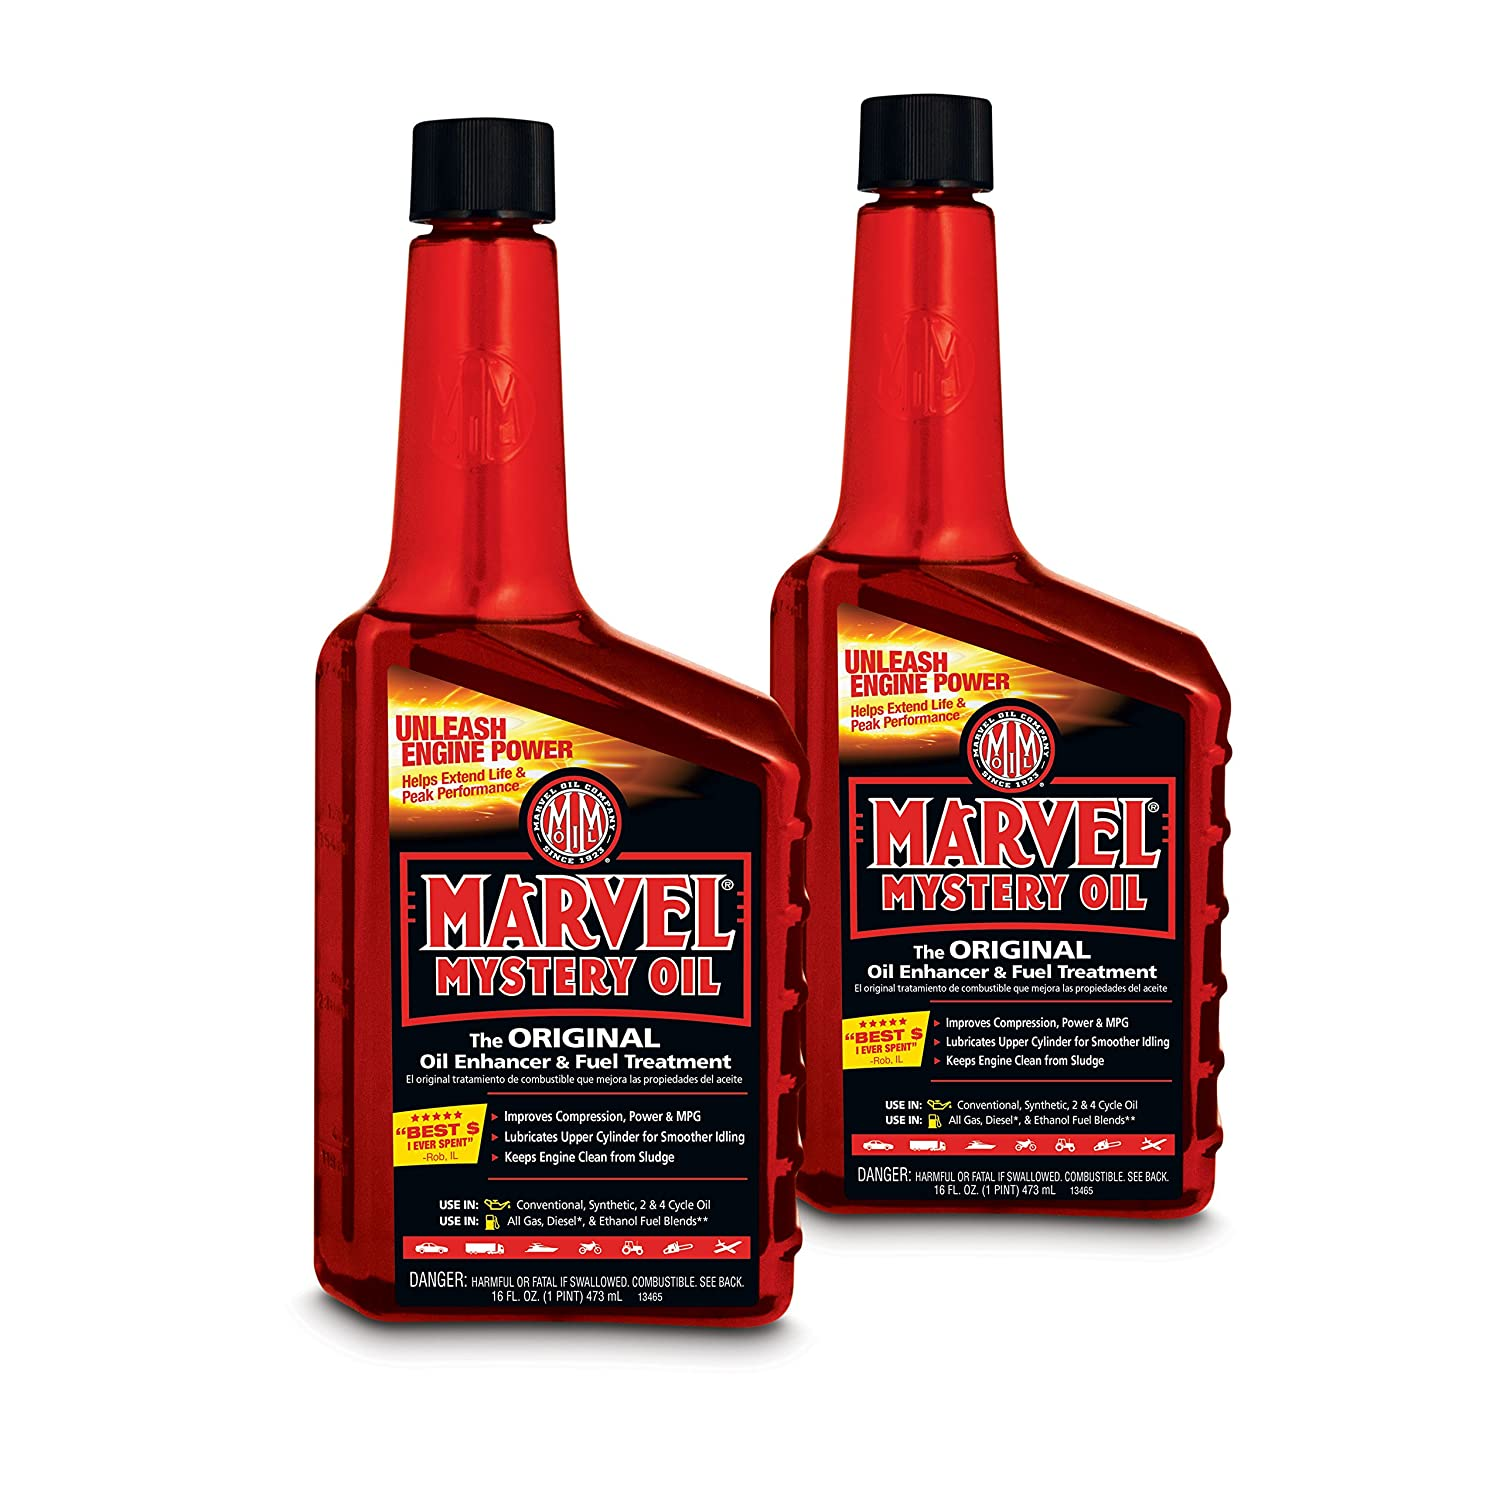 3. Marvel Mystery Oil 50721 Red MM12R Mystery Oil, 2 Pack (16 oz), 32. Fluid_Ounces